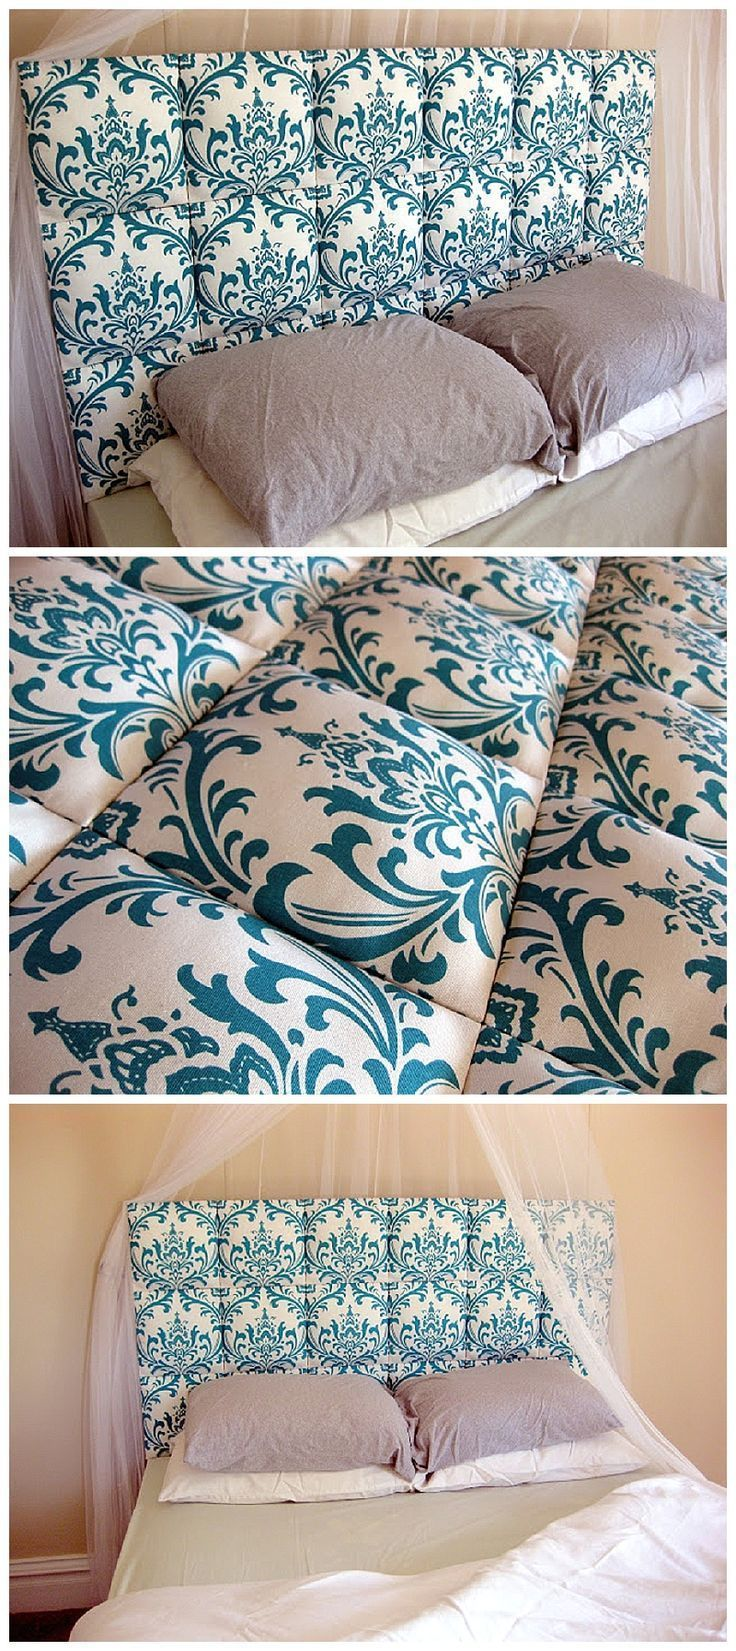 51 51 diy headboard ideas to make the bed of your dreams snappy pixels - Easy Upholstered Headboard Tutorial